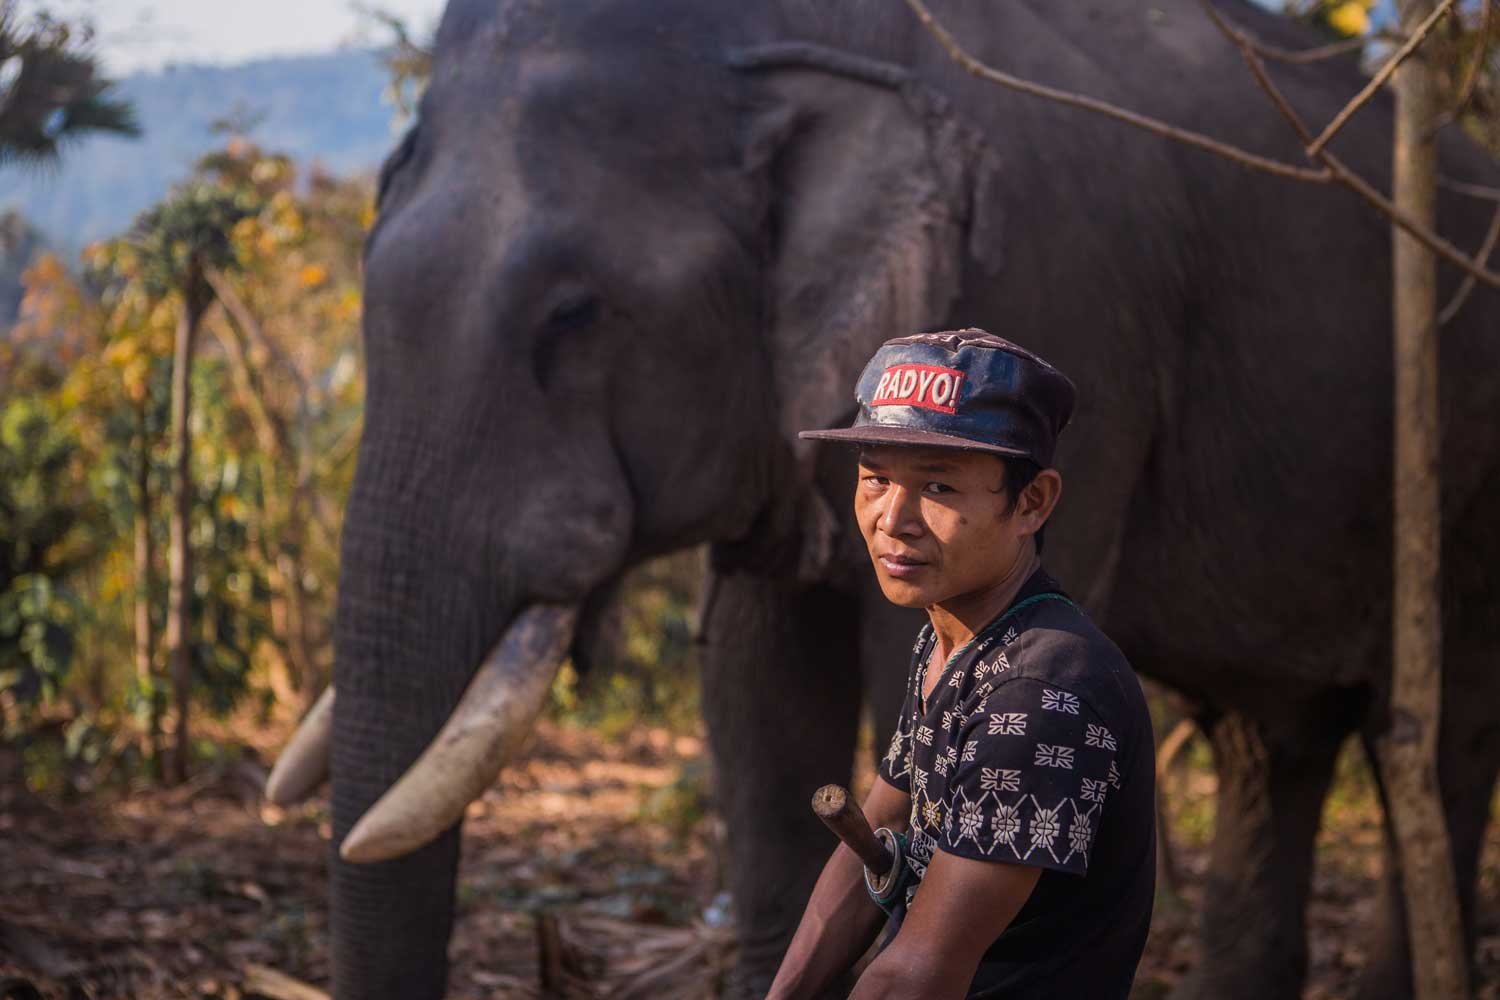 The coffee production process is tied to the elephant conservation efforts in Thailand.